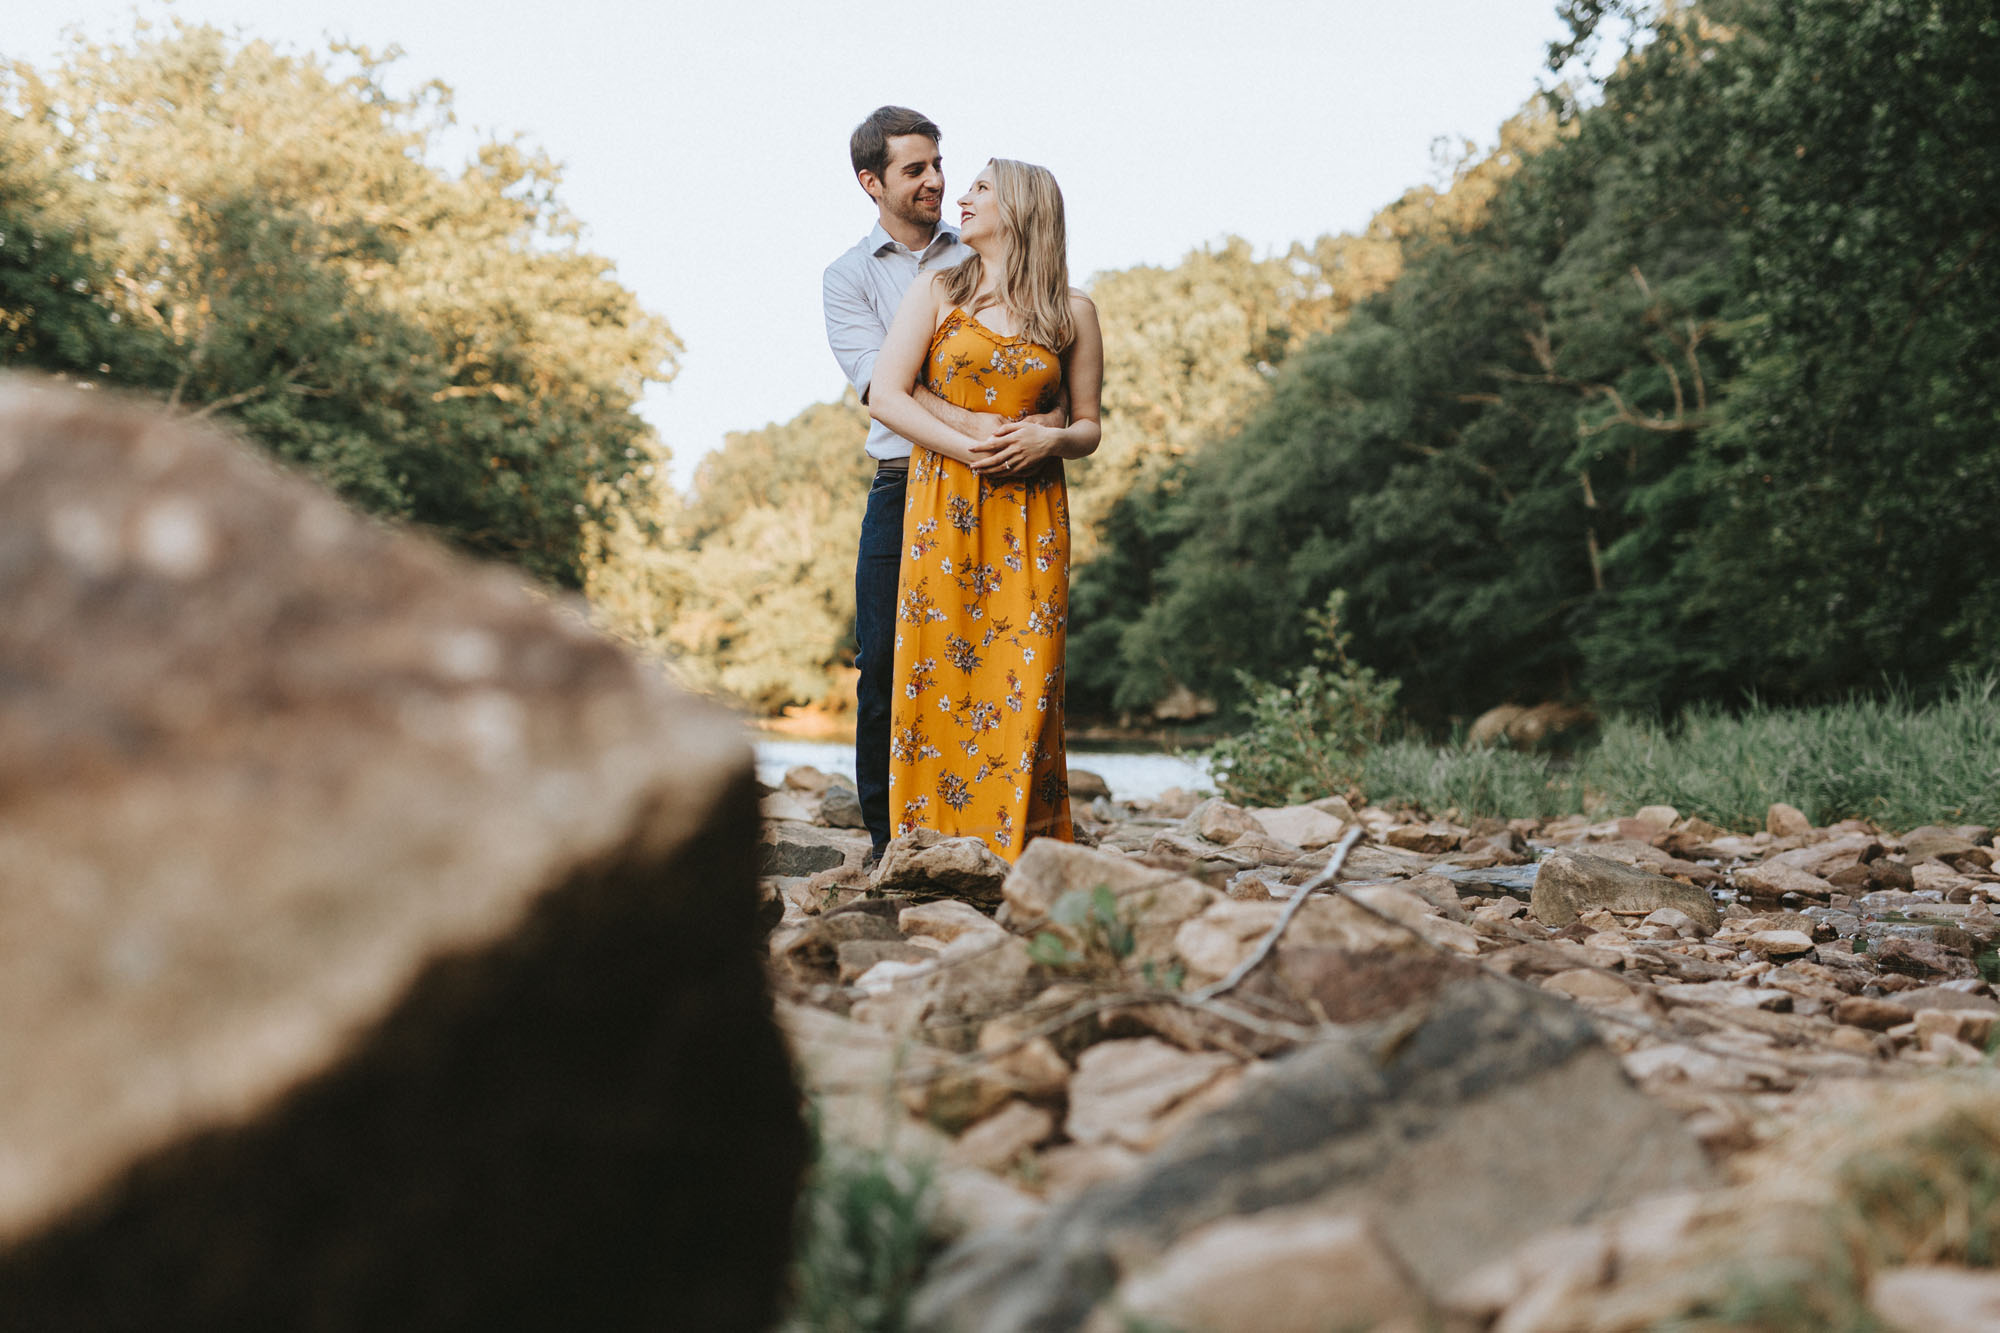 Twisted-Oaks-Jessica-Matt-EngagementI07A3206.jpg